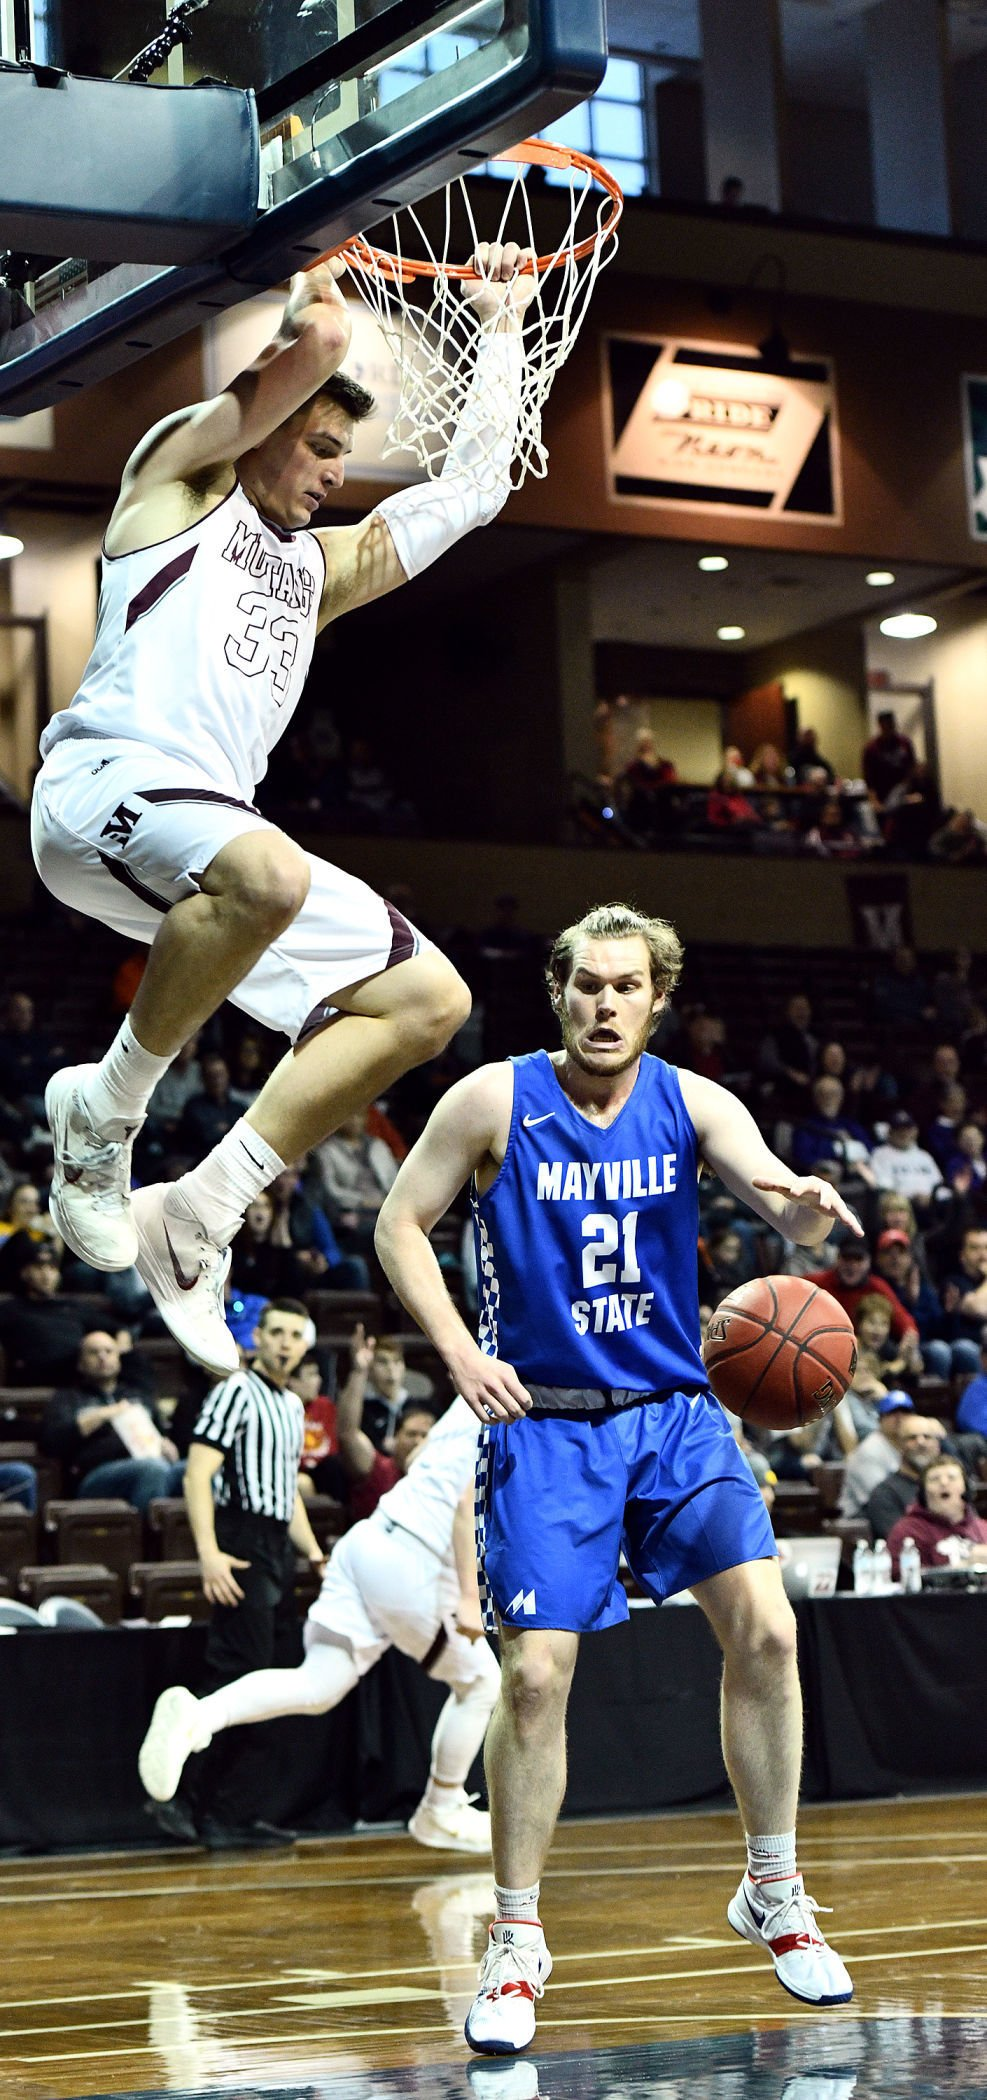 Morningside cruises past Mayville State in first round ...